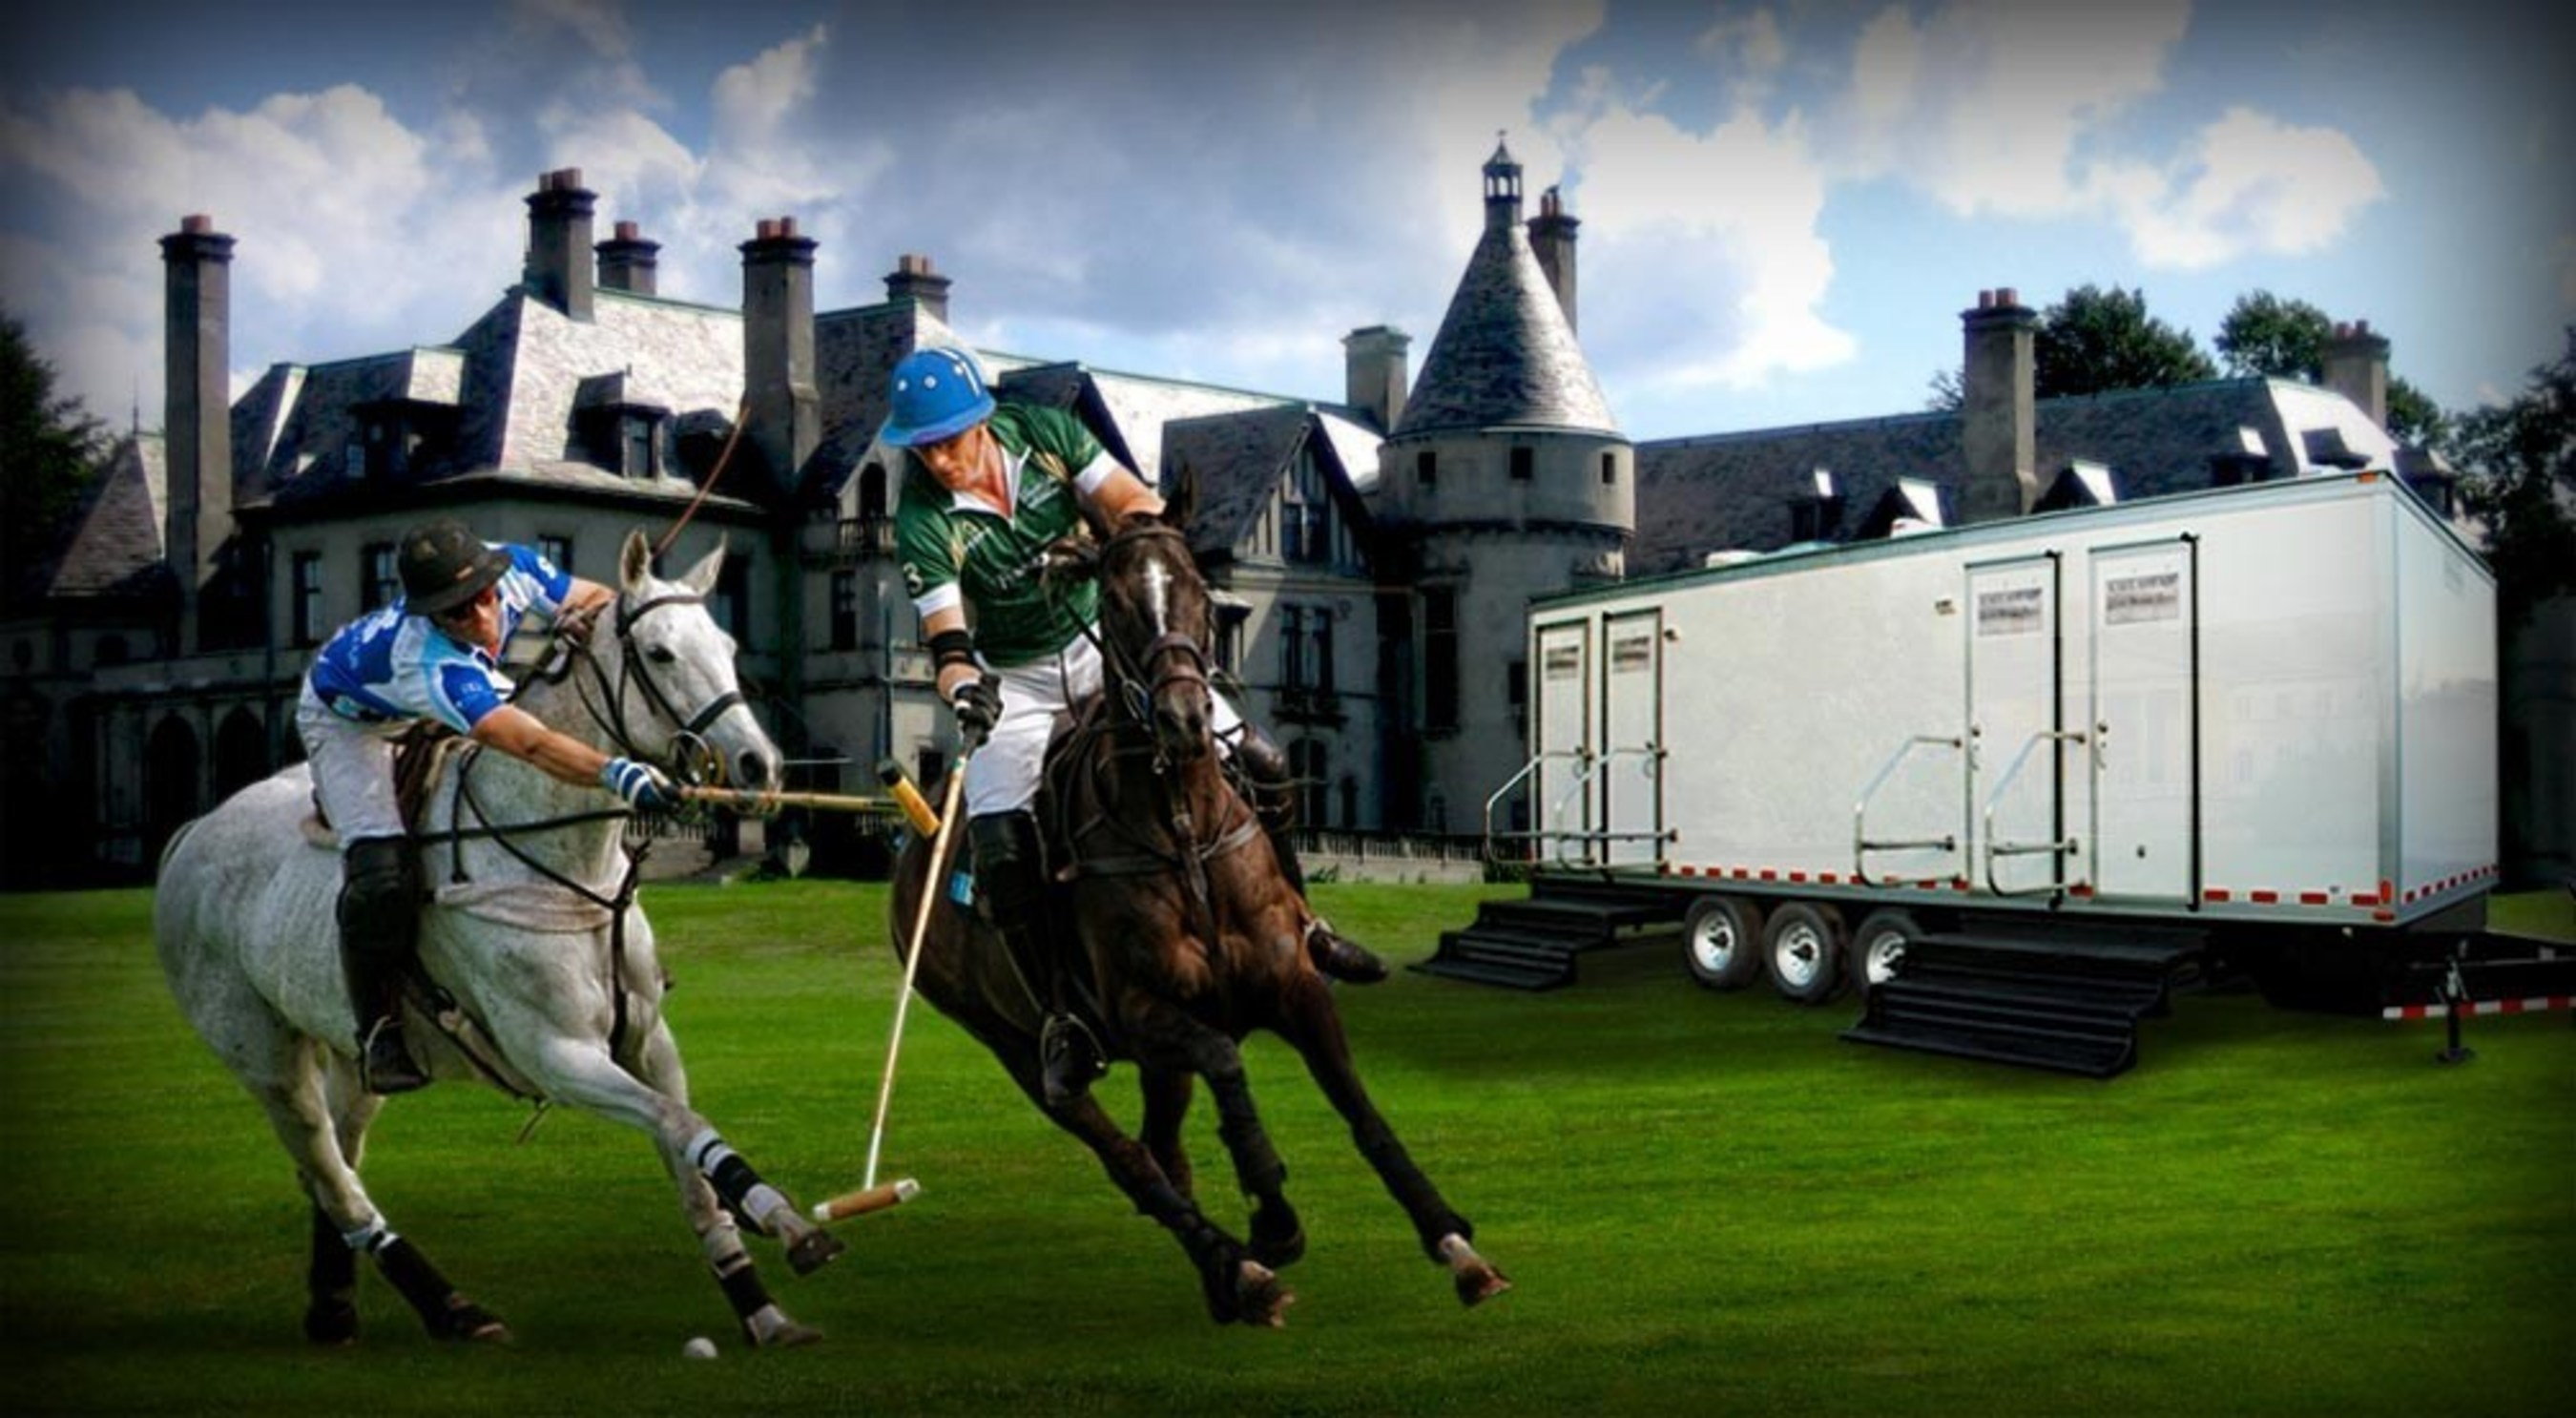 The Equestrian Luxury Restroom Trailer by CALLAHEAD Corp.